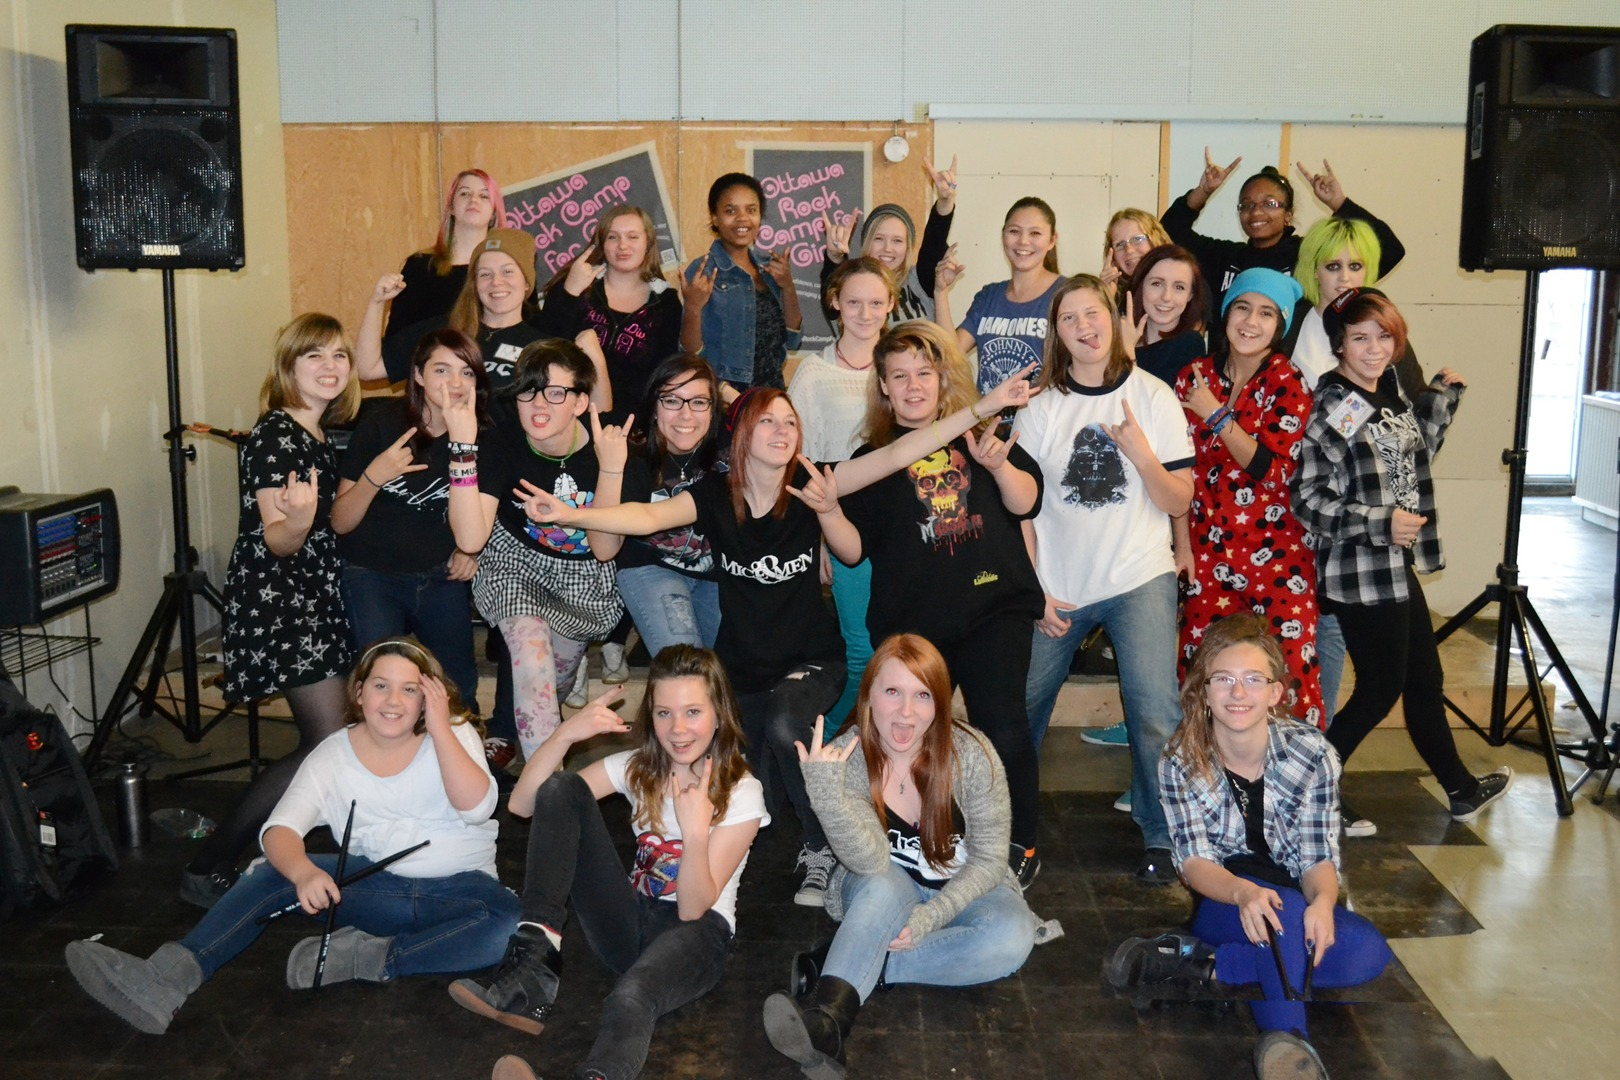 February 2017 – Ottawa Rock Camp for Girls